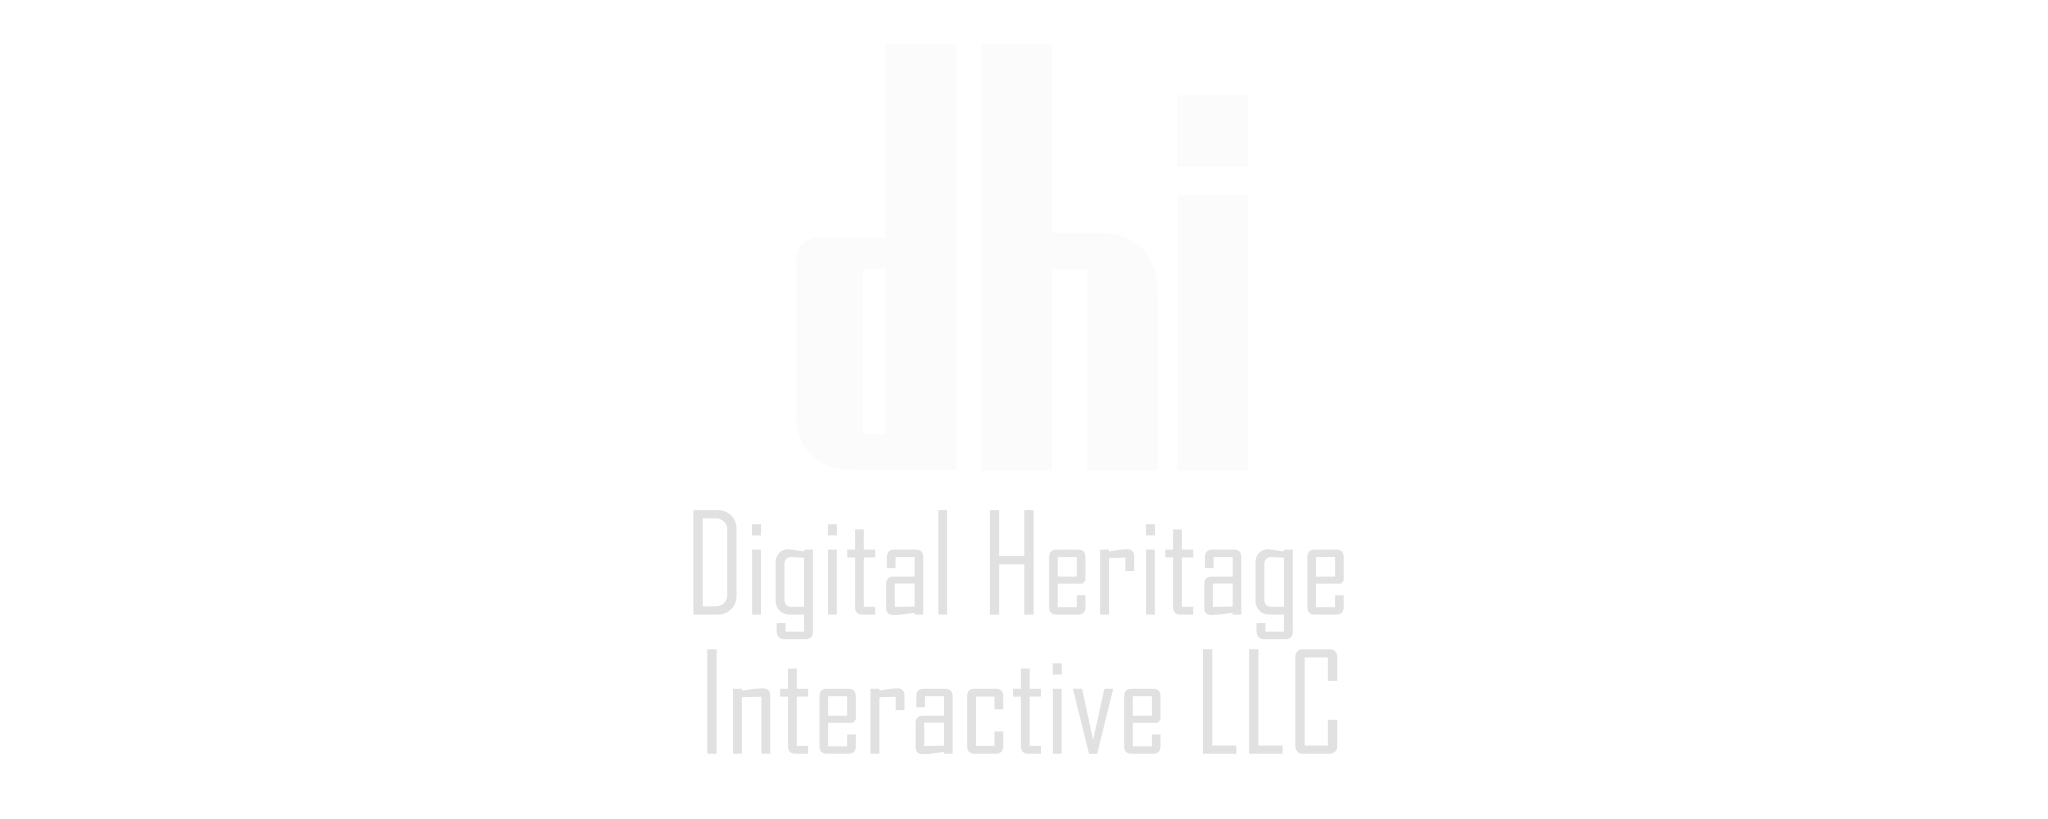 Digital Heritage Interactive, LLC